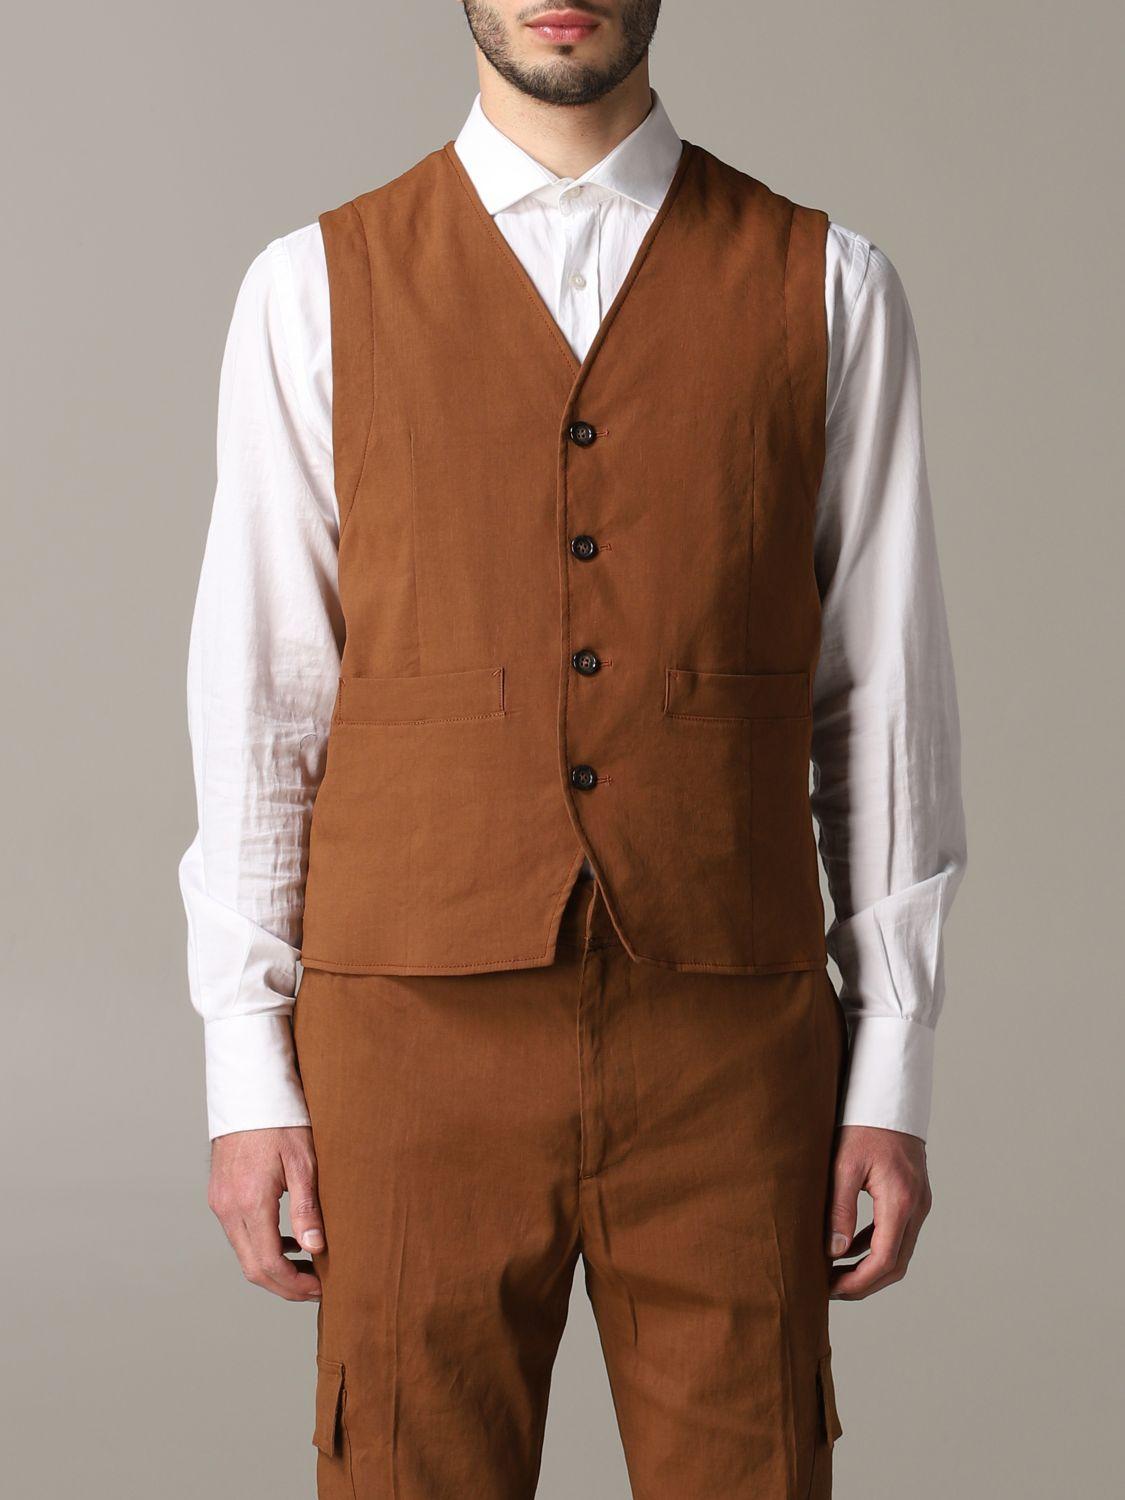 Suit vest men Paolo Pecora leather 1